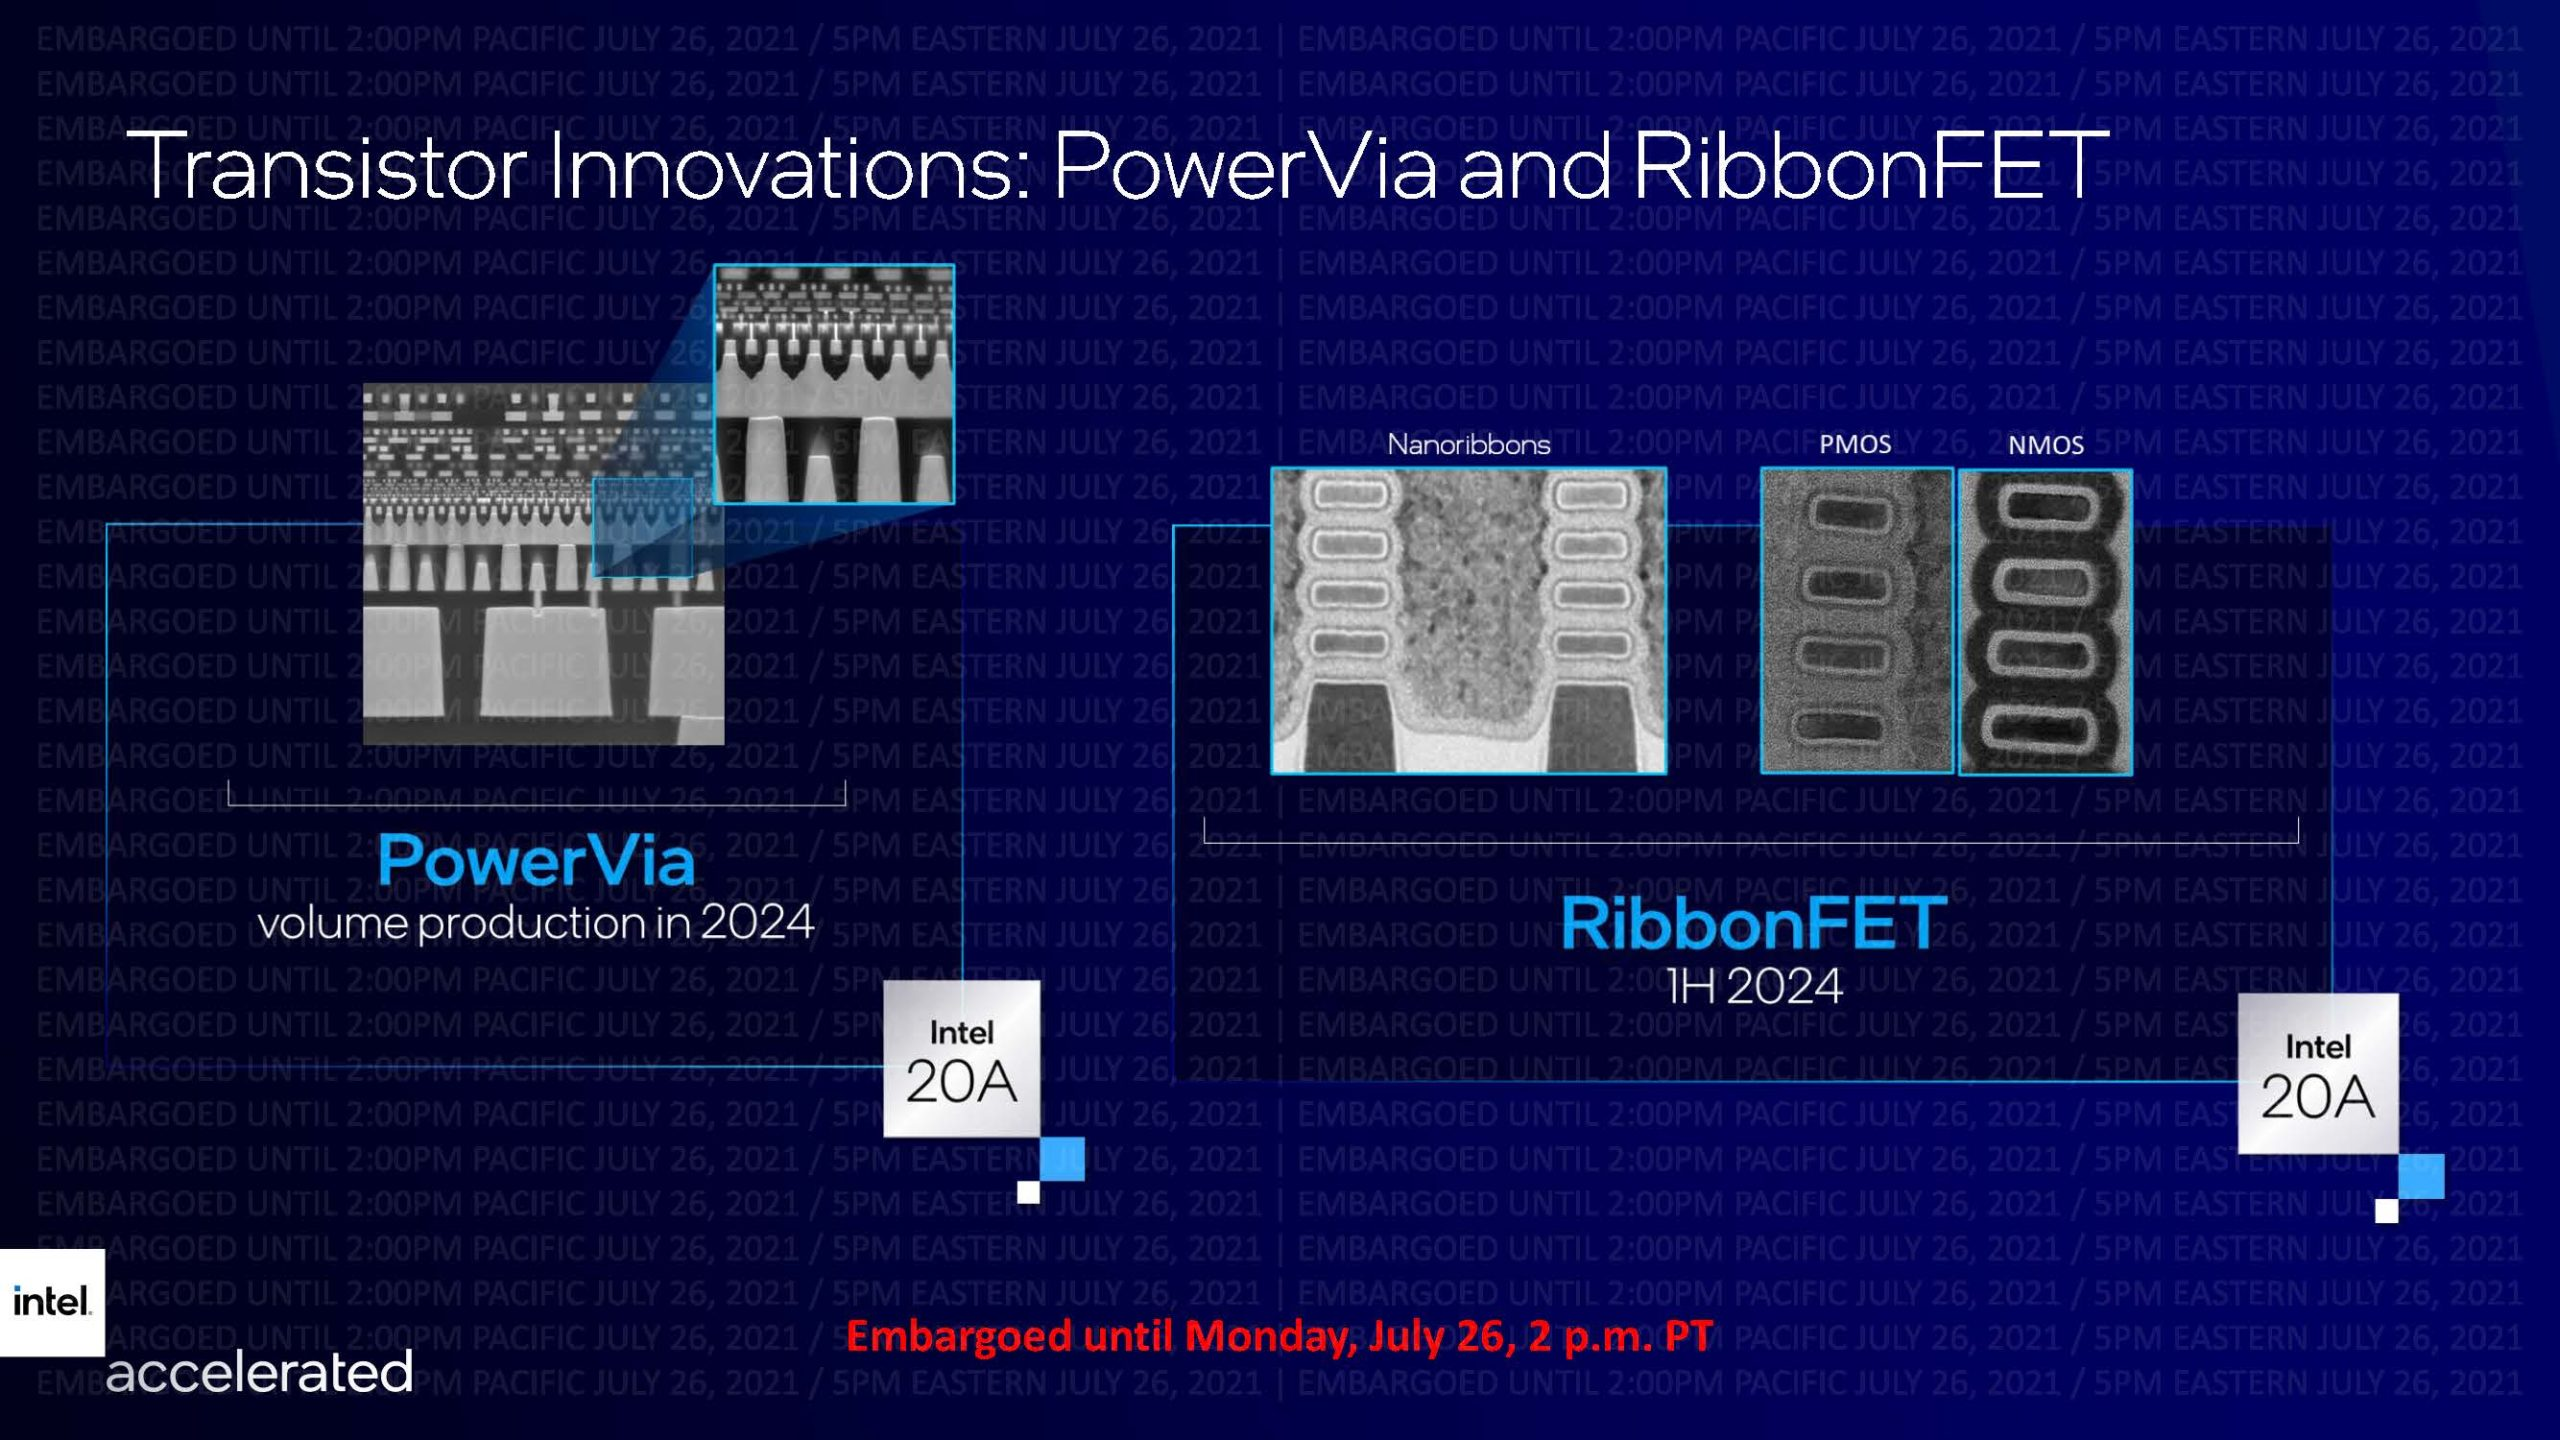 Intel Accelerated Transistor Innovations 2024 PowerVia And RibbonFET